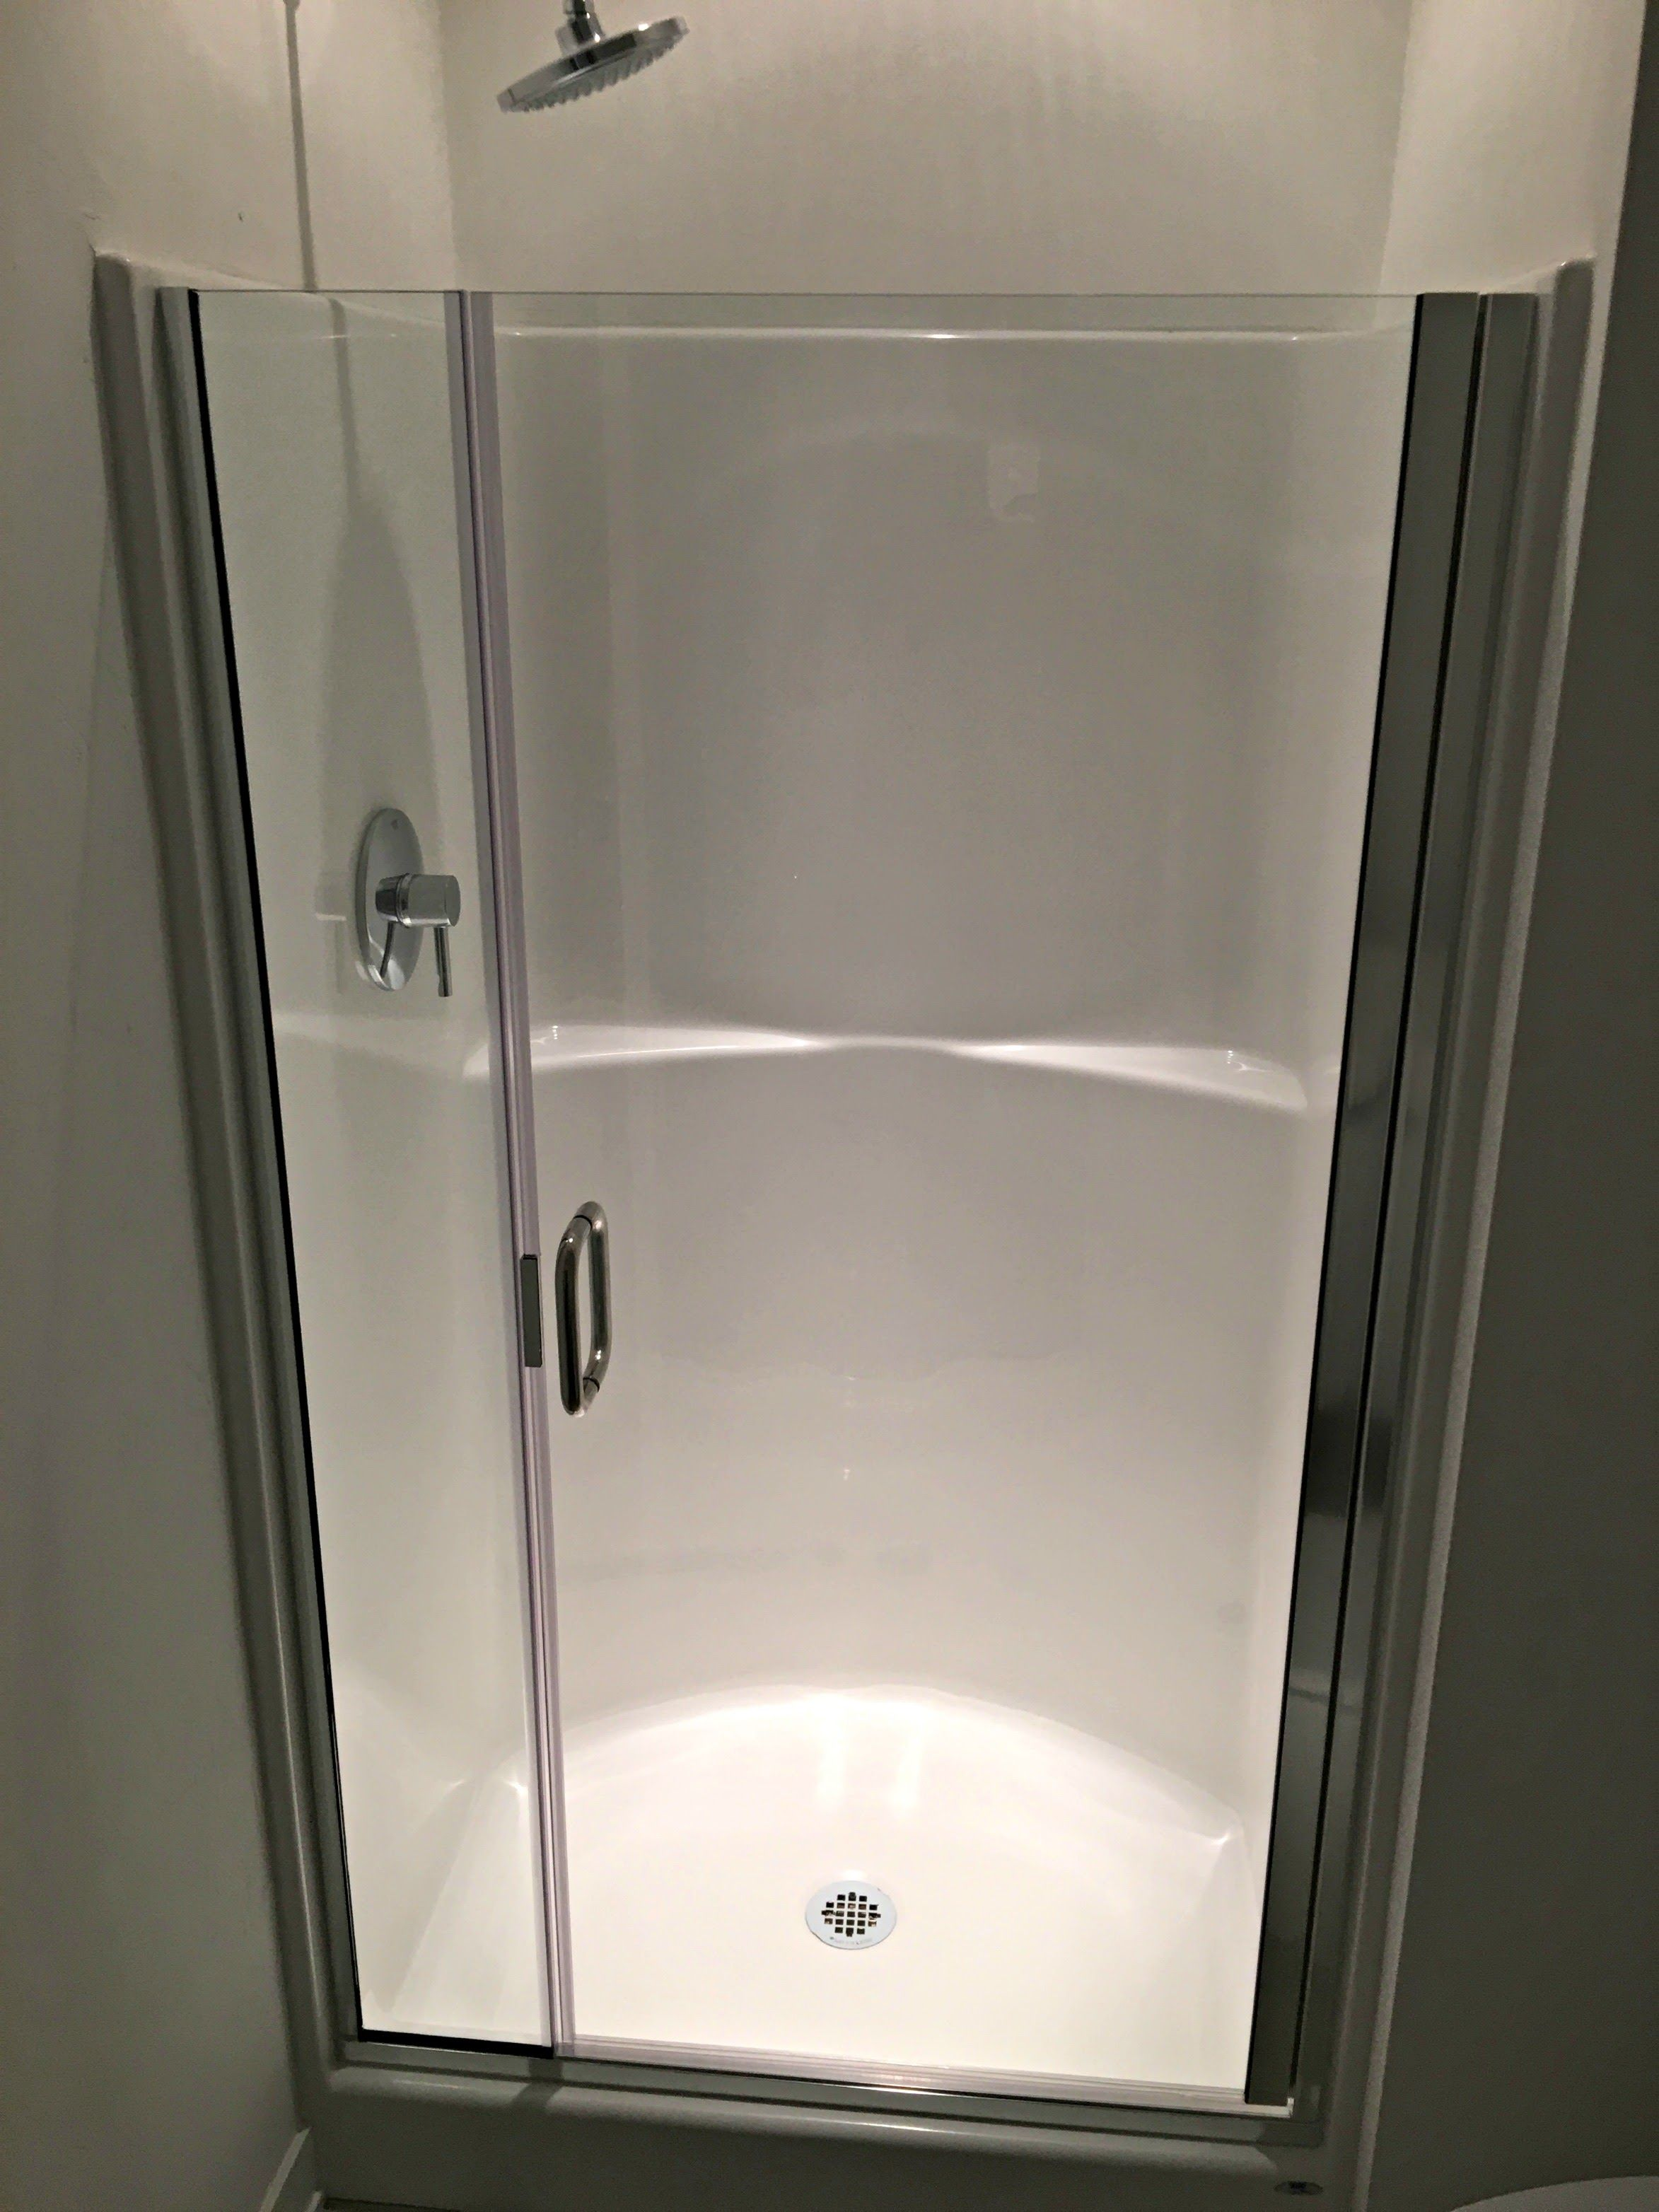 Hybrid Shower Door And Panel On An Acrylic Unit With No Header